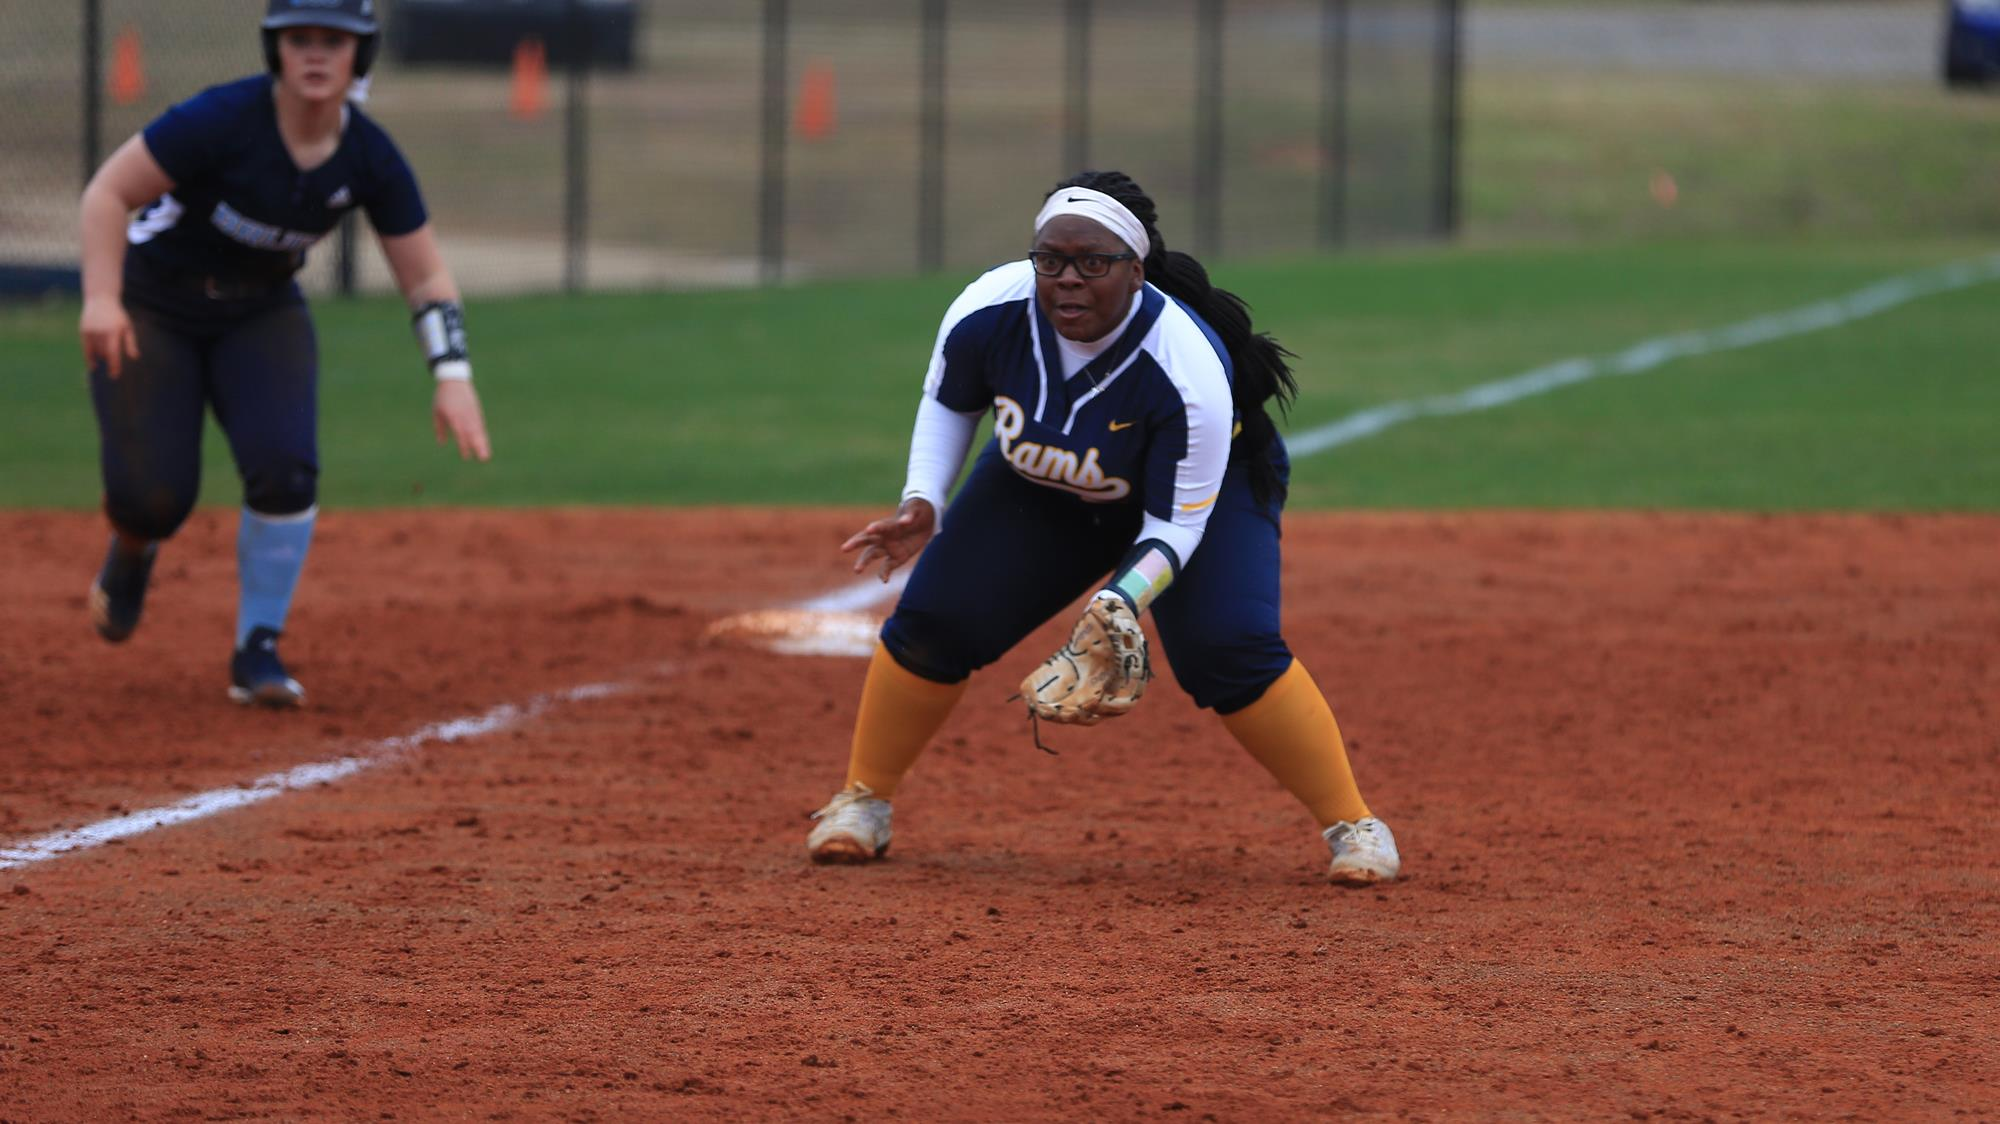 Softball Continues to Add Talent for Next Year - Columbia